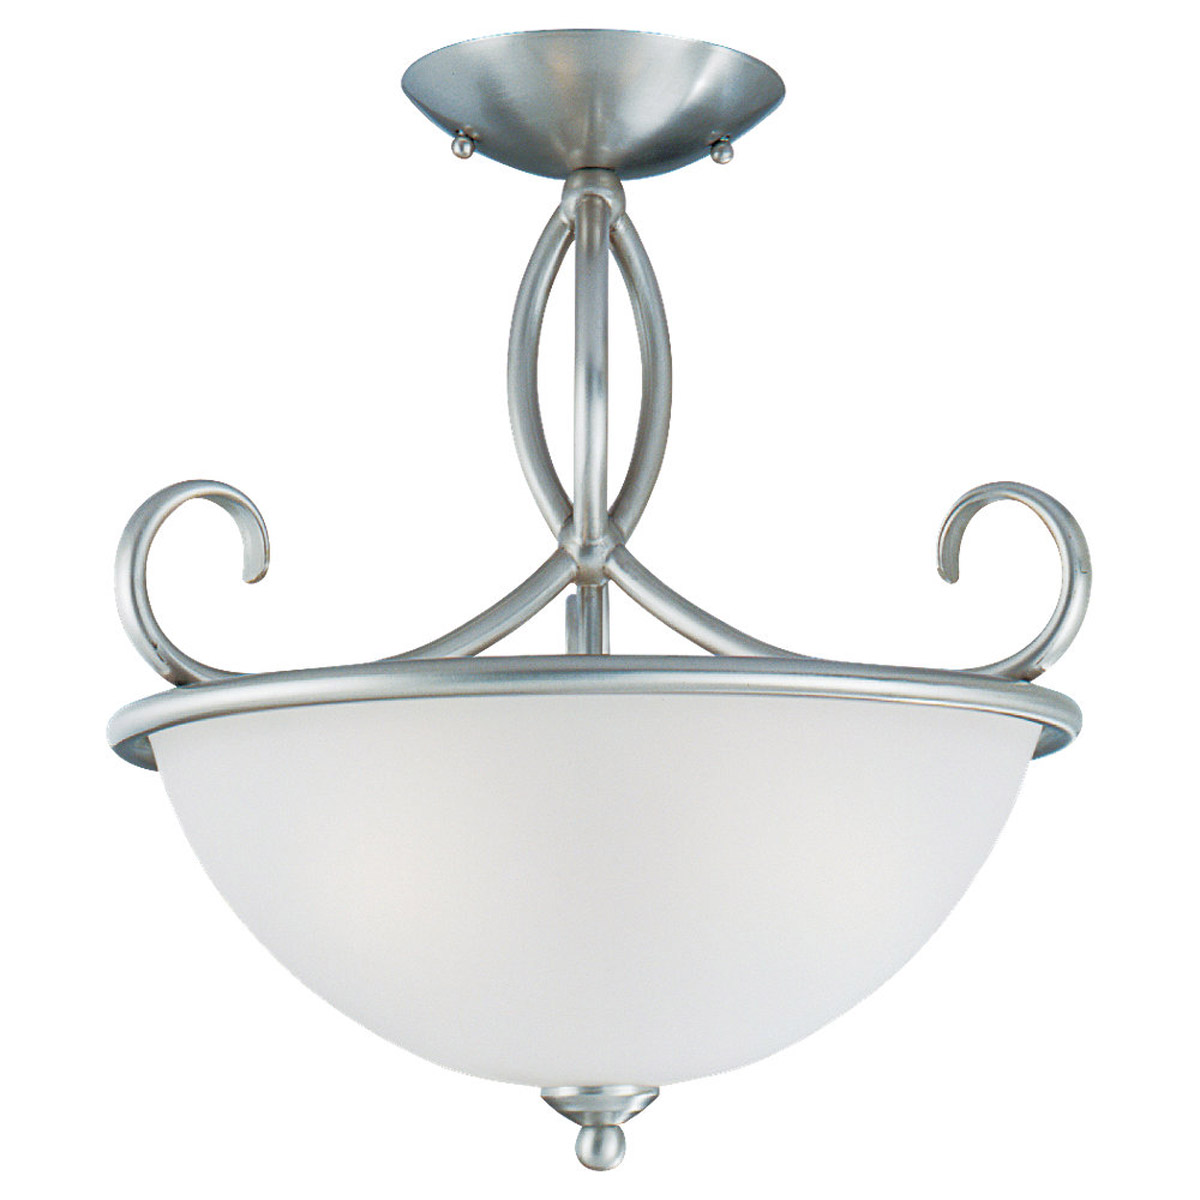 Sea Gull Lighting Pemberton 3 Light Semi-Flush Mount in Brushed Nickel 75075-962 photo